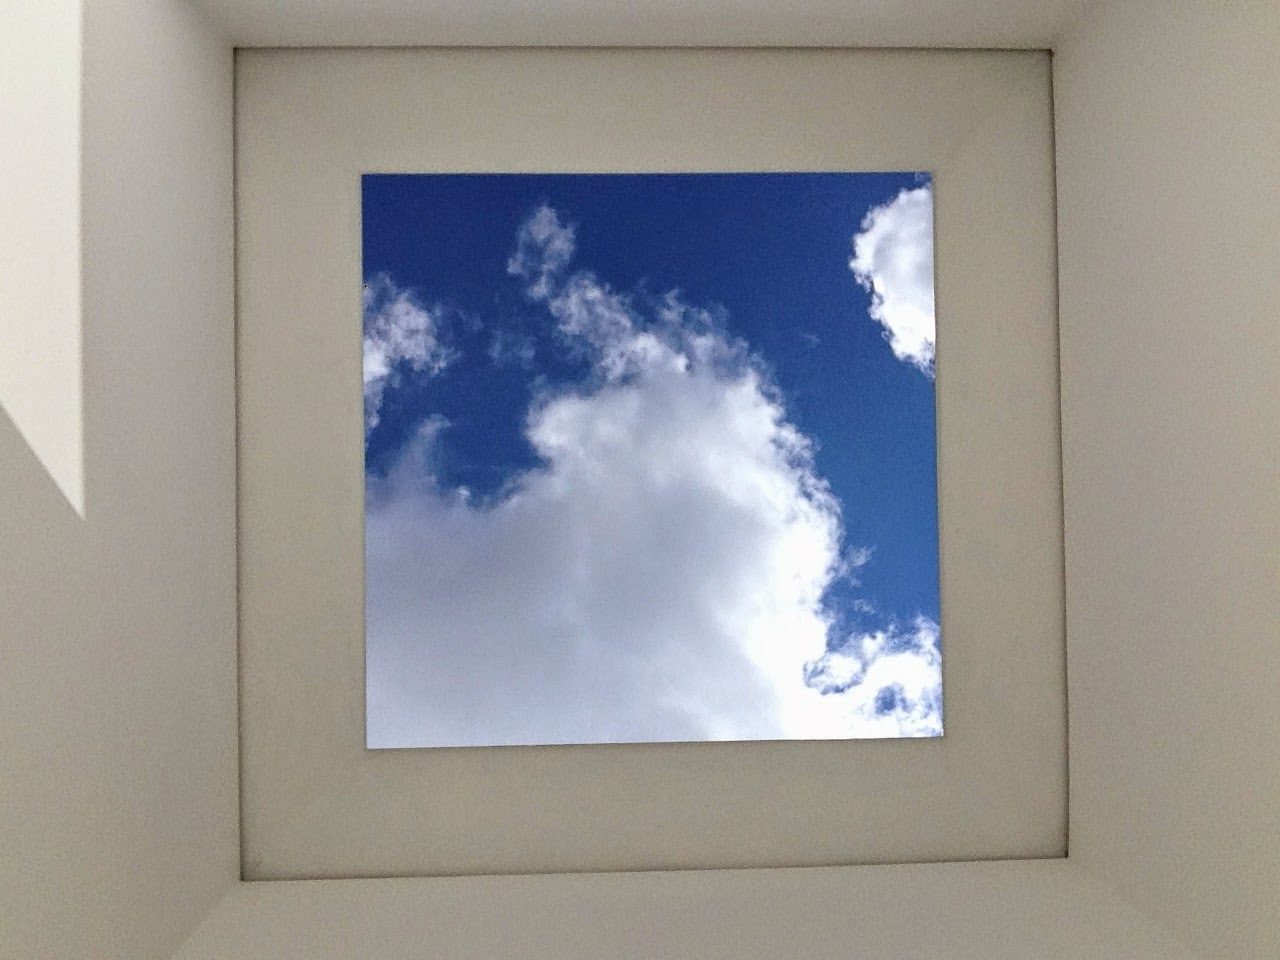 James Turrell, Sky Space I, Varese, 1976